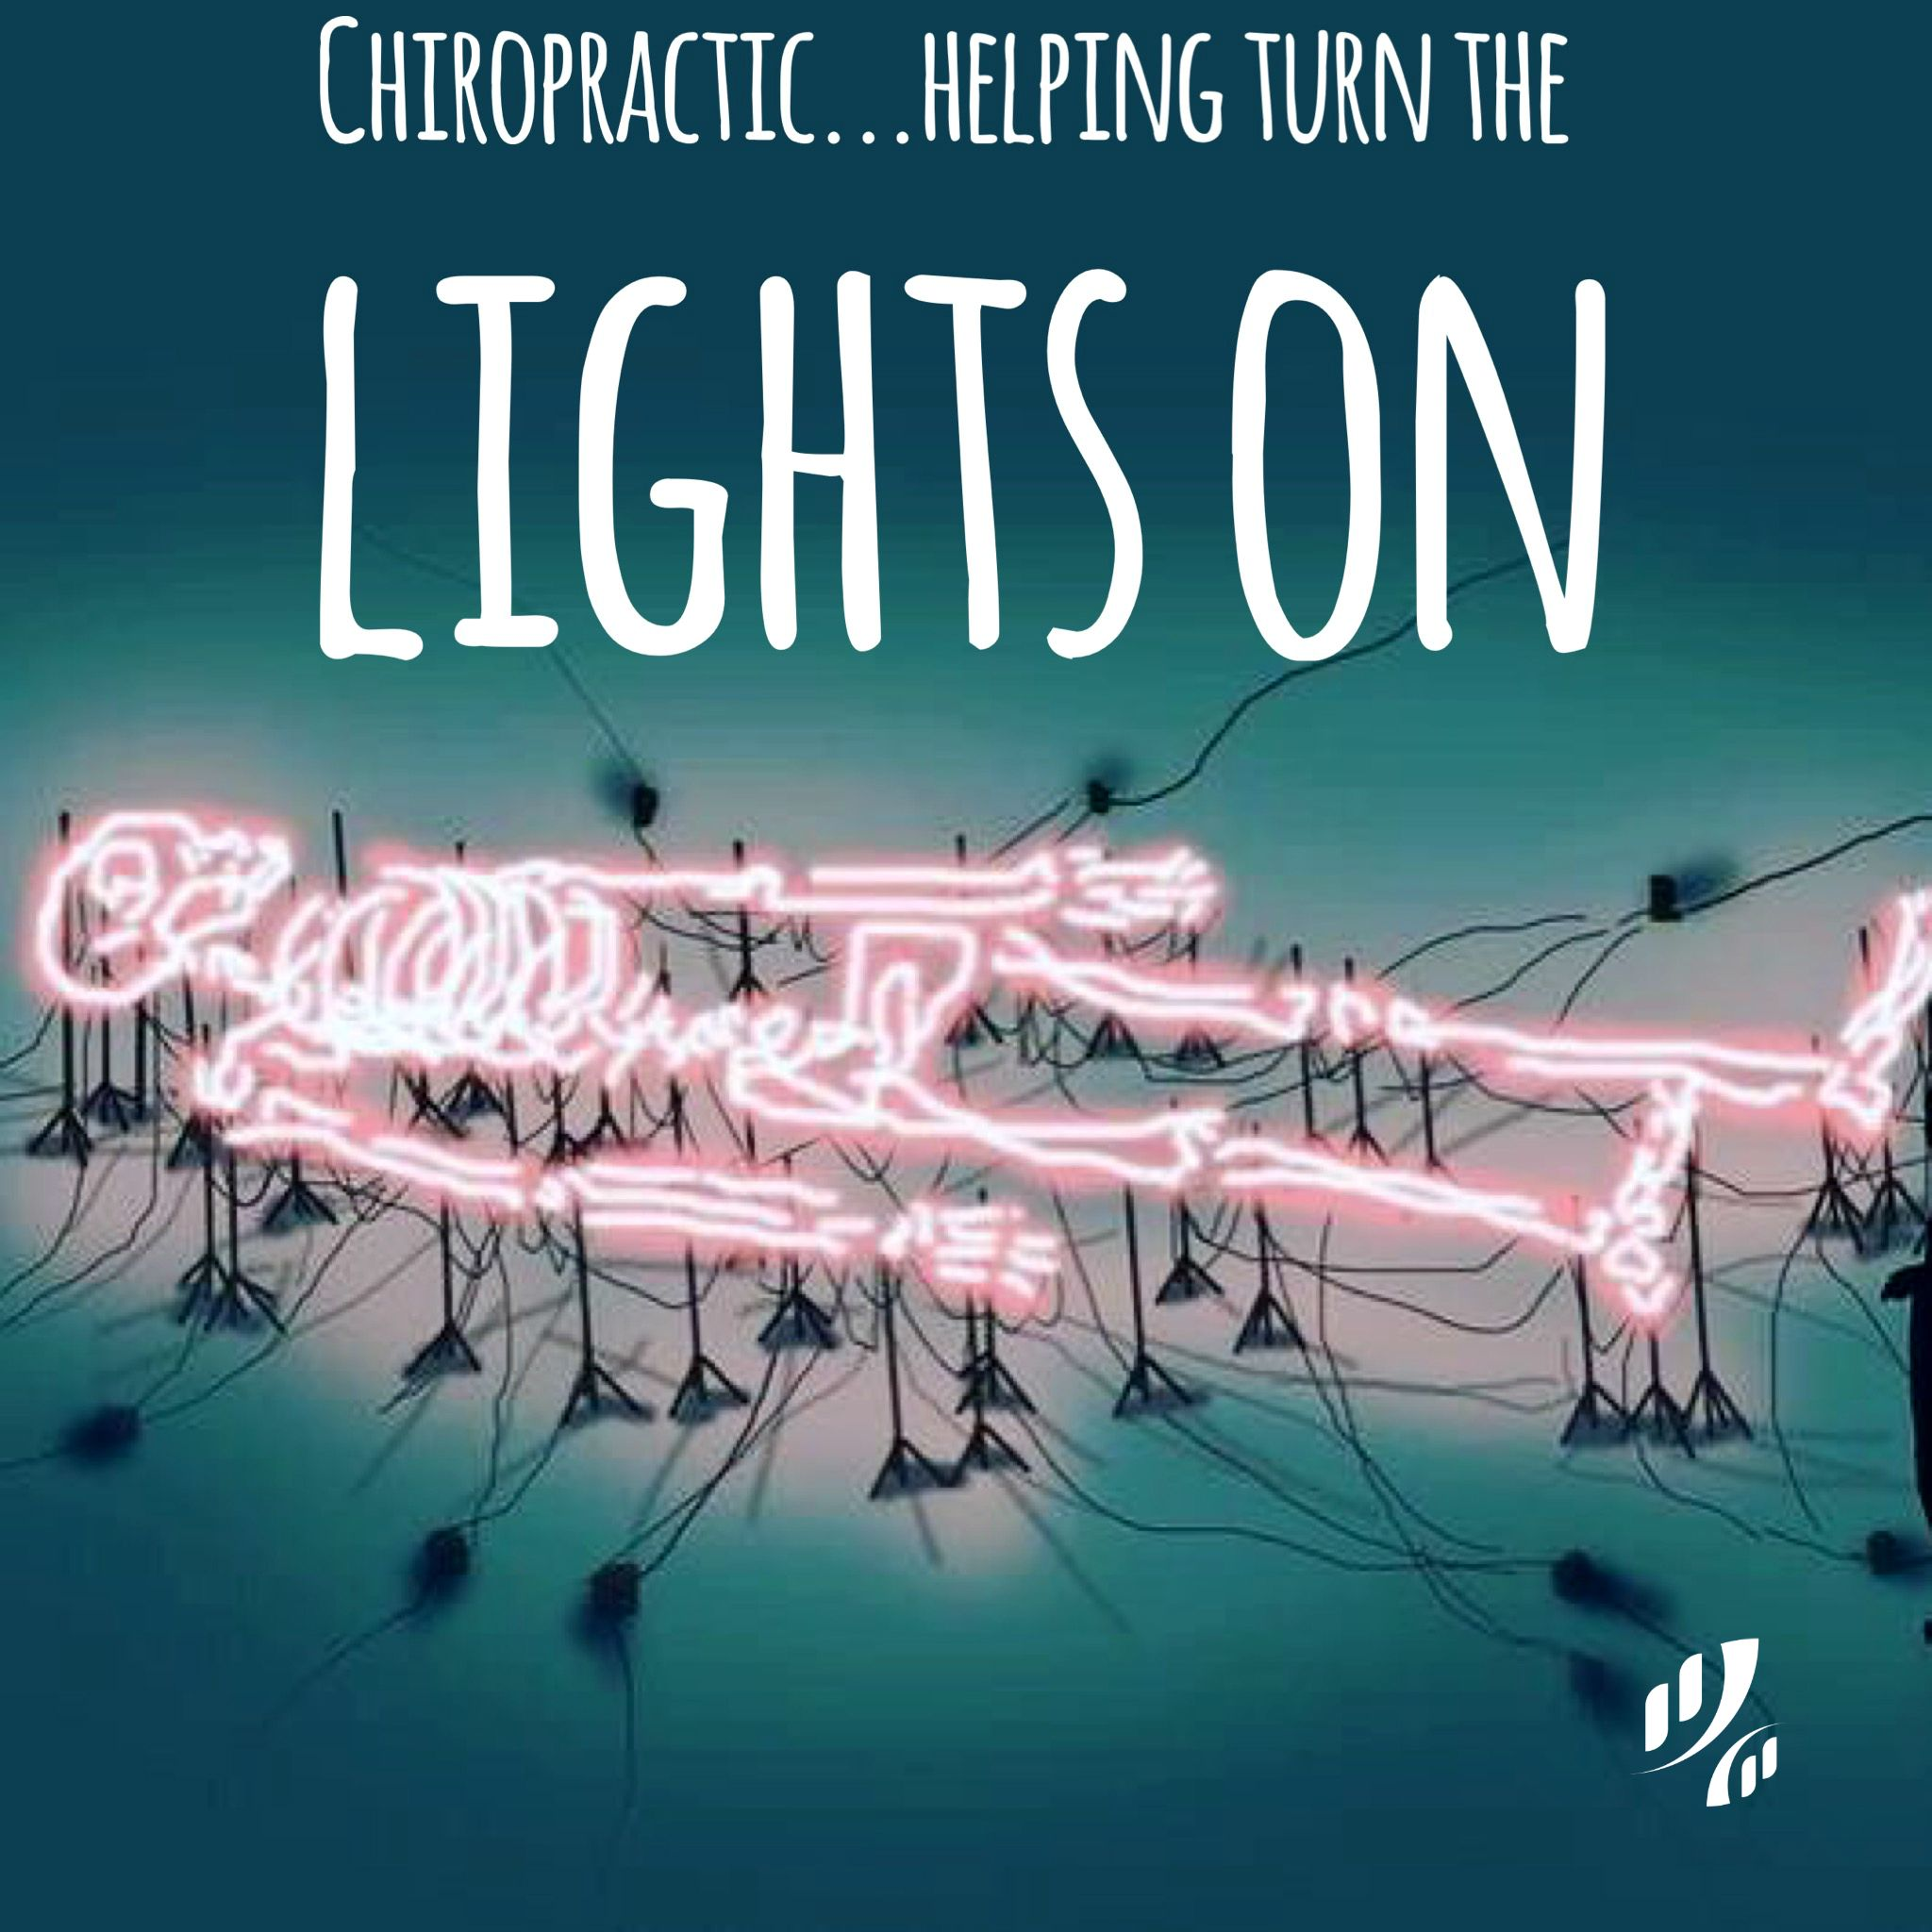 Chiropractic helping turn the lights on